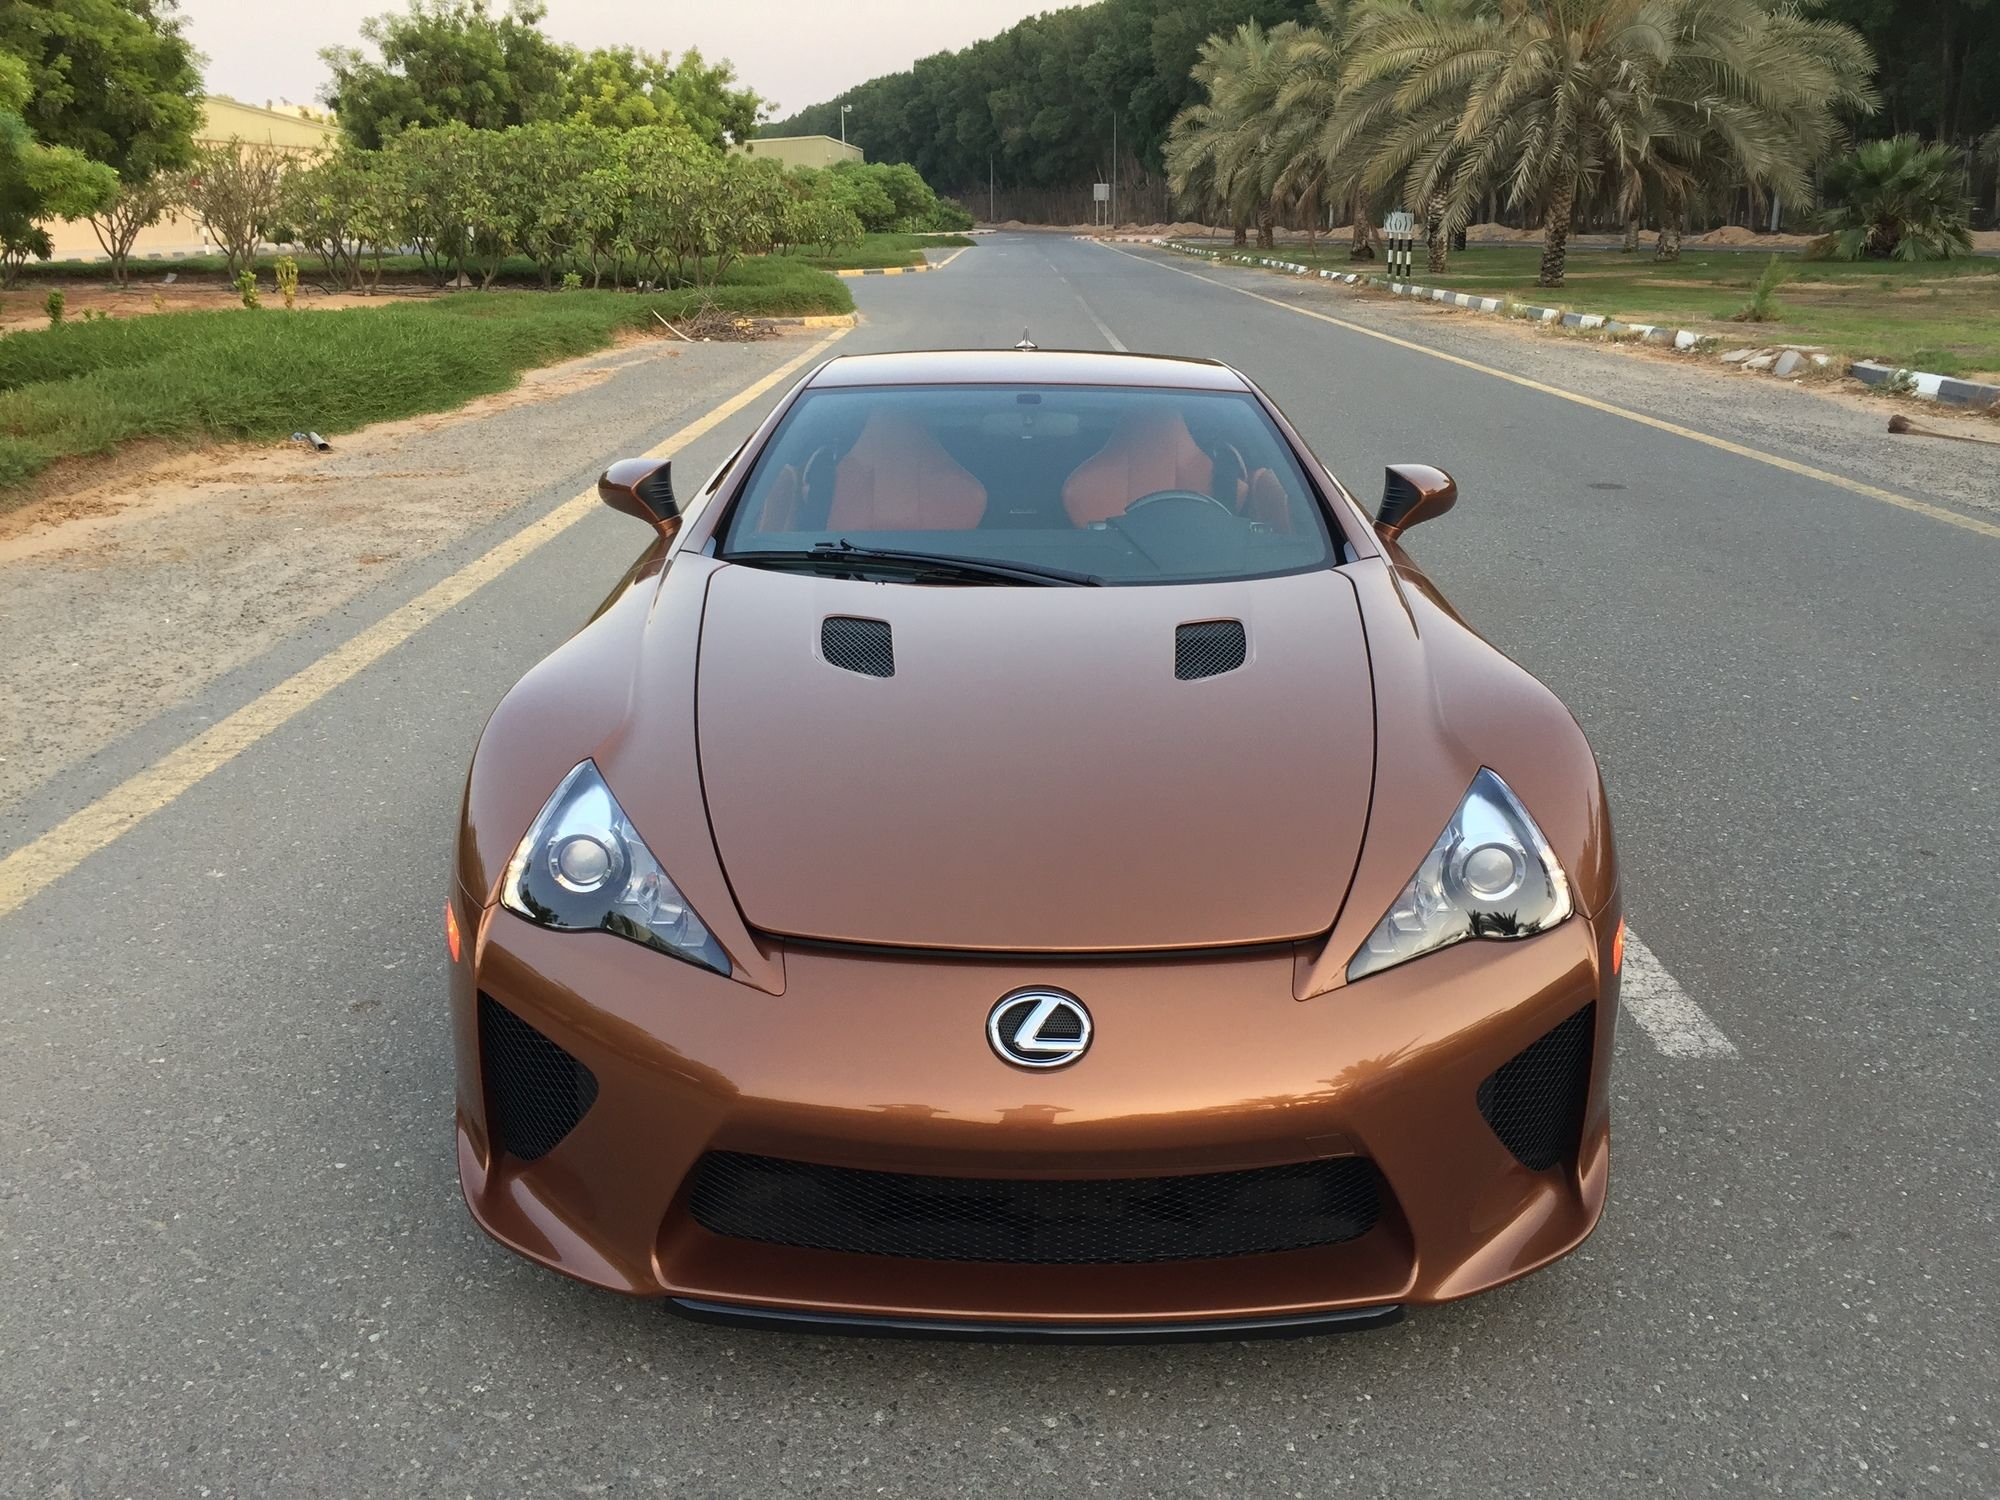 Used Brown Lexus on Sale for $645,000 - The Drive